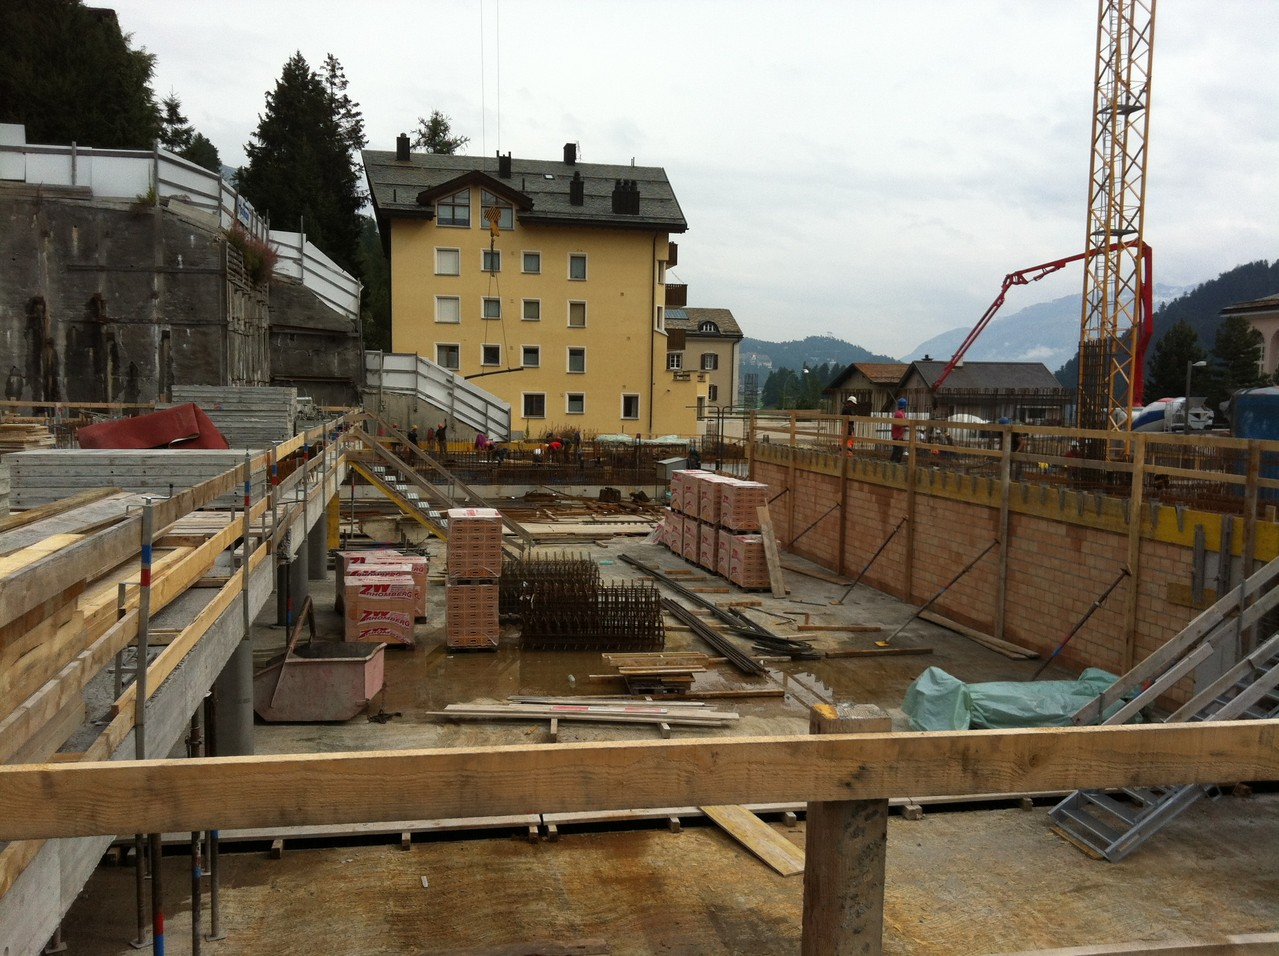 Baustelle September 2012